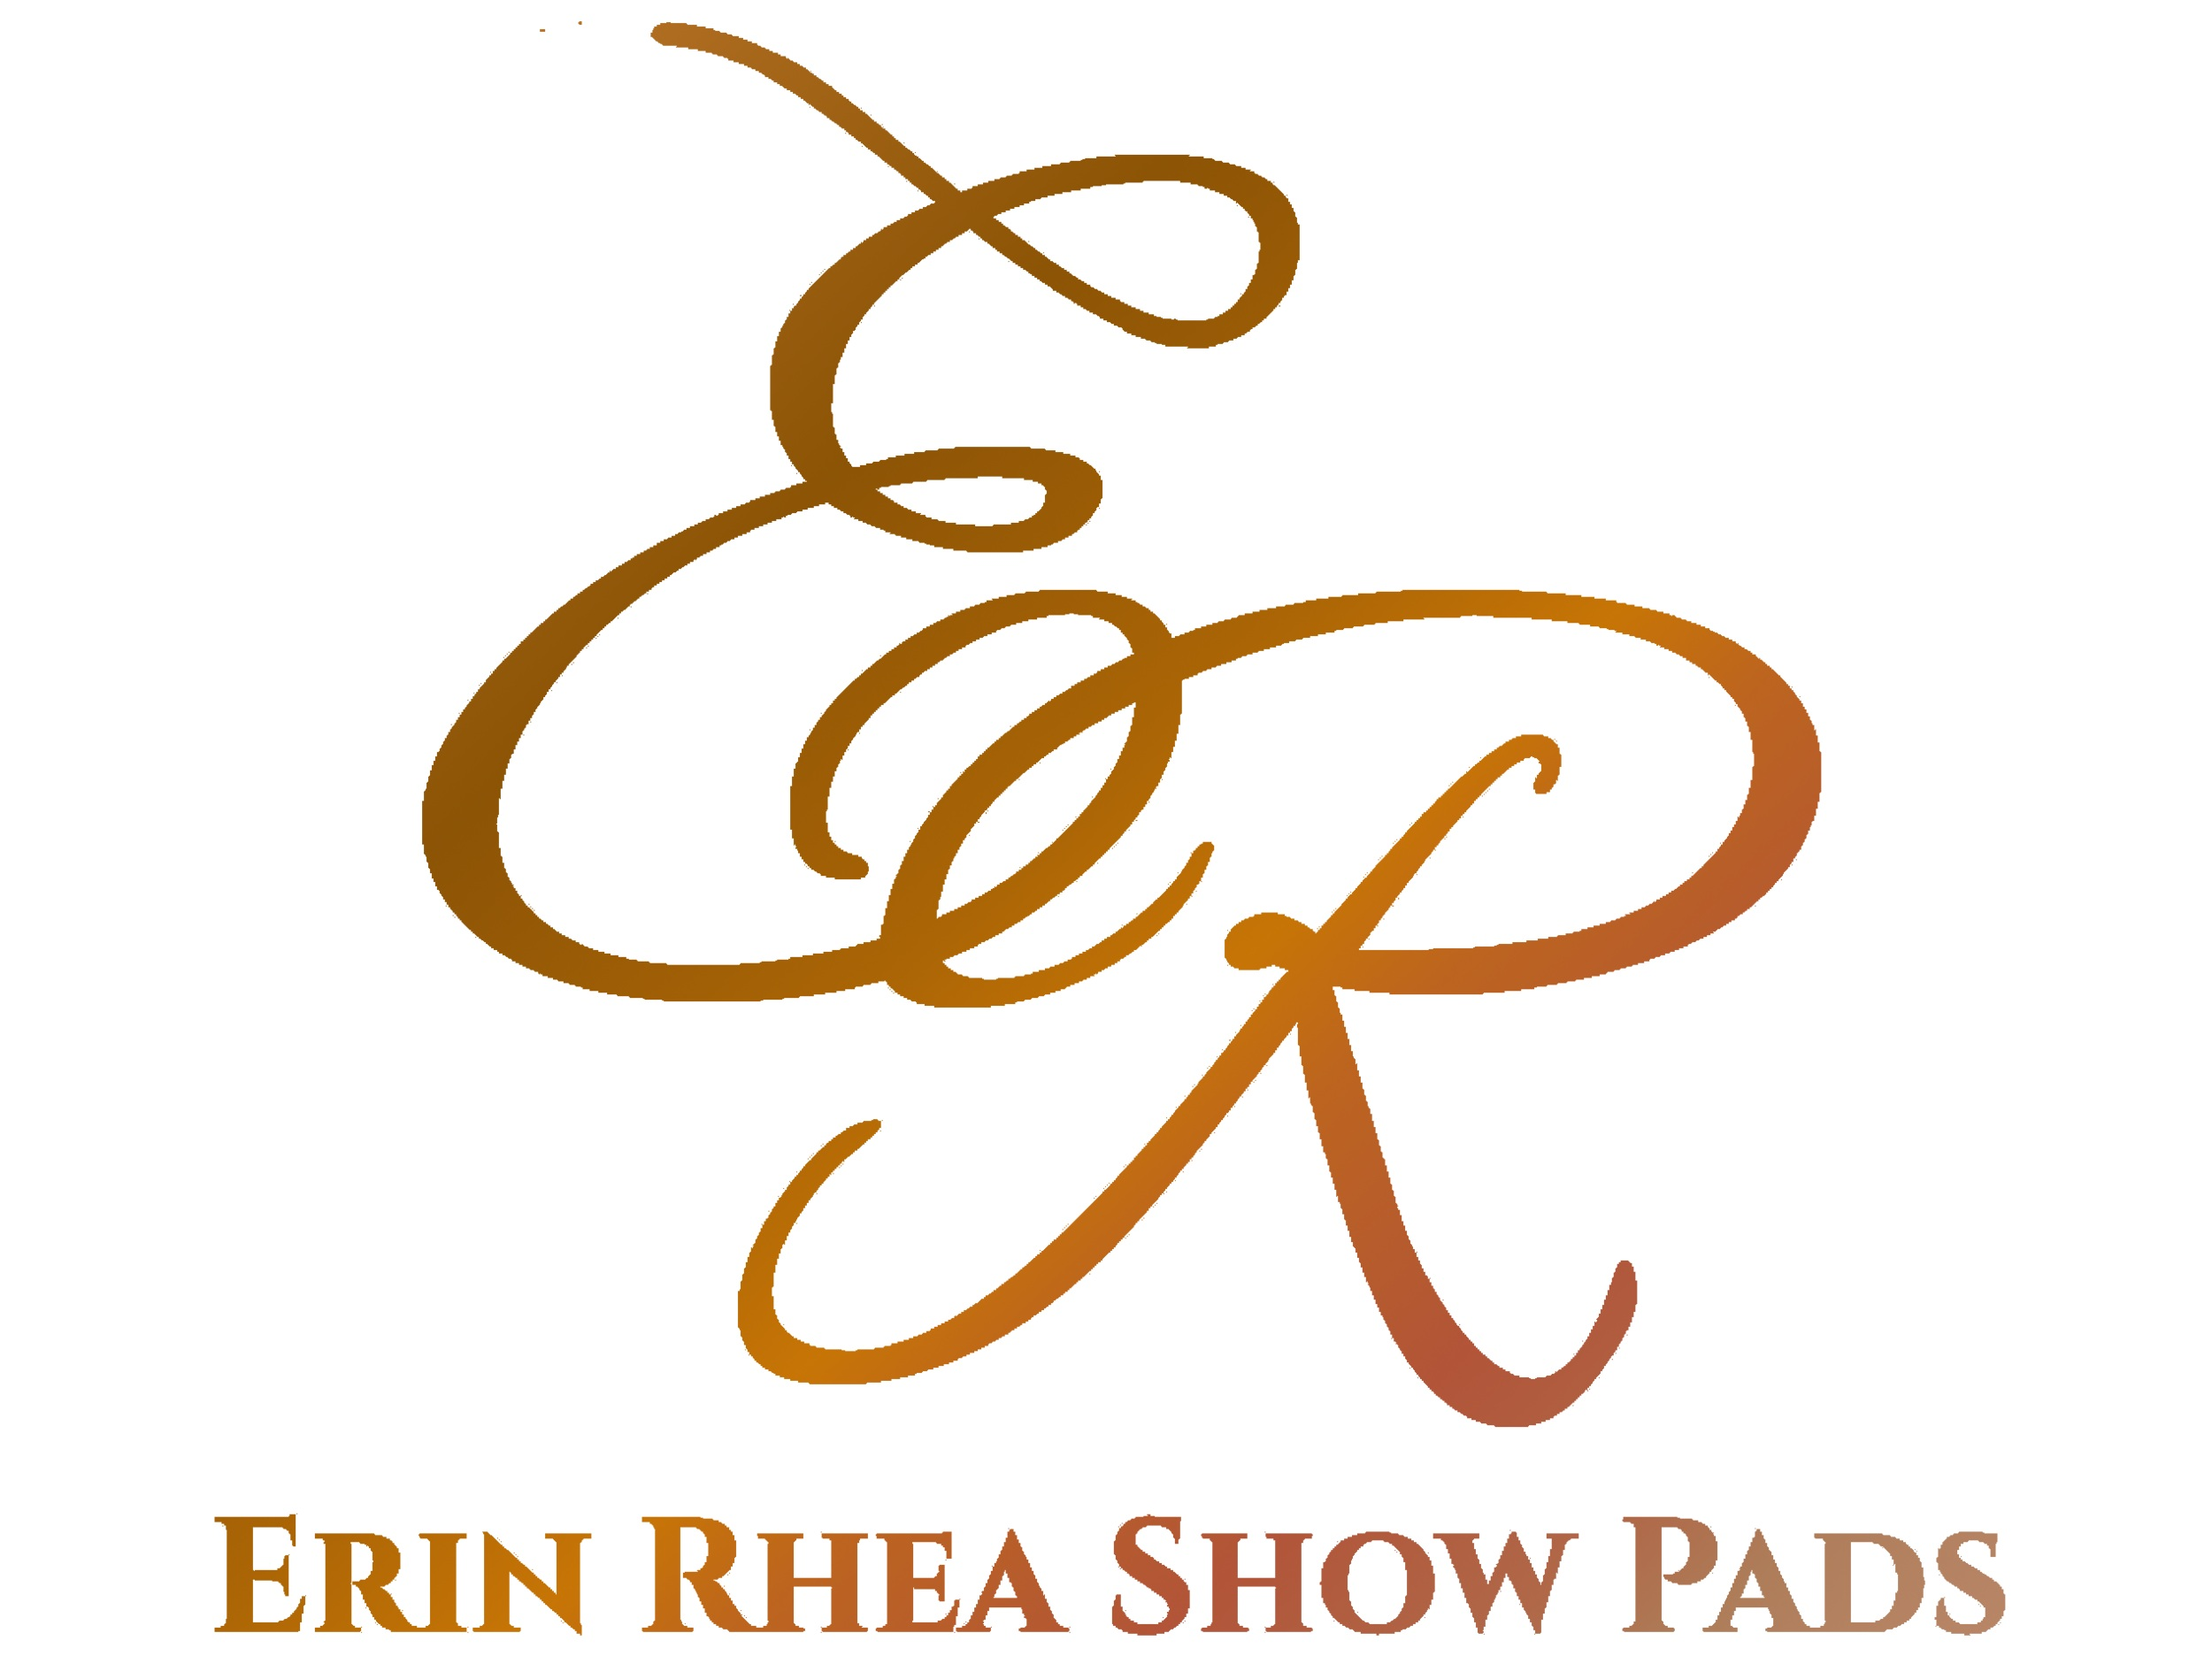 Erin Rhea Show Pads — professional quality show pads at an unbeatable price